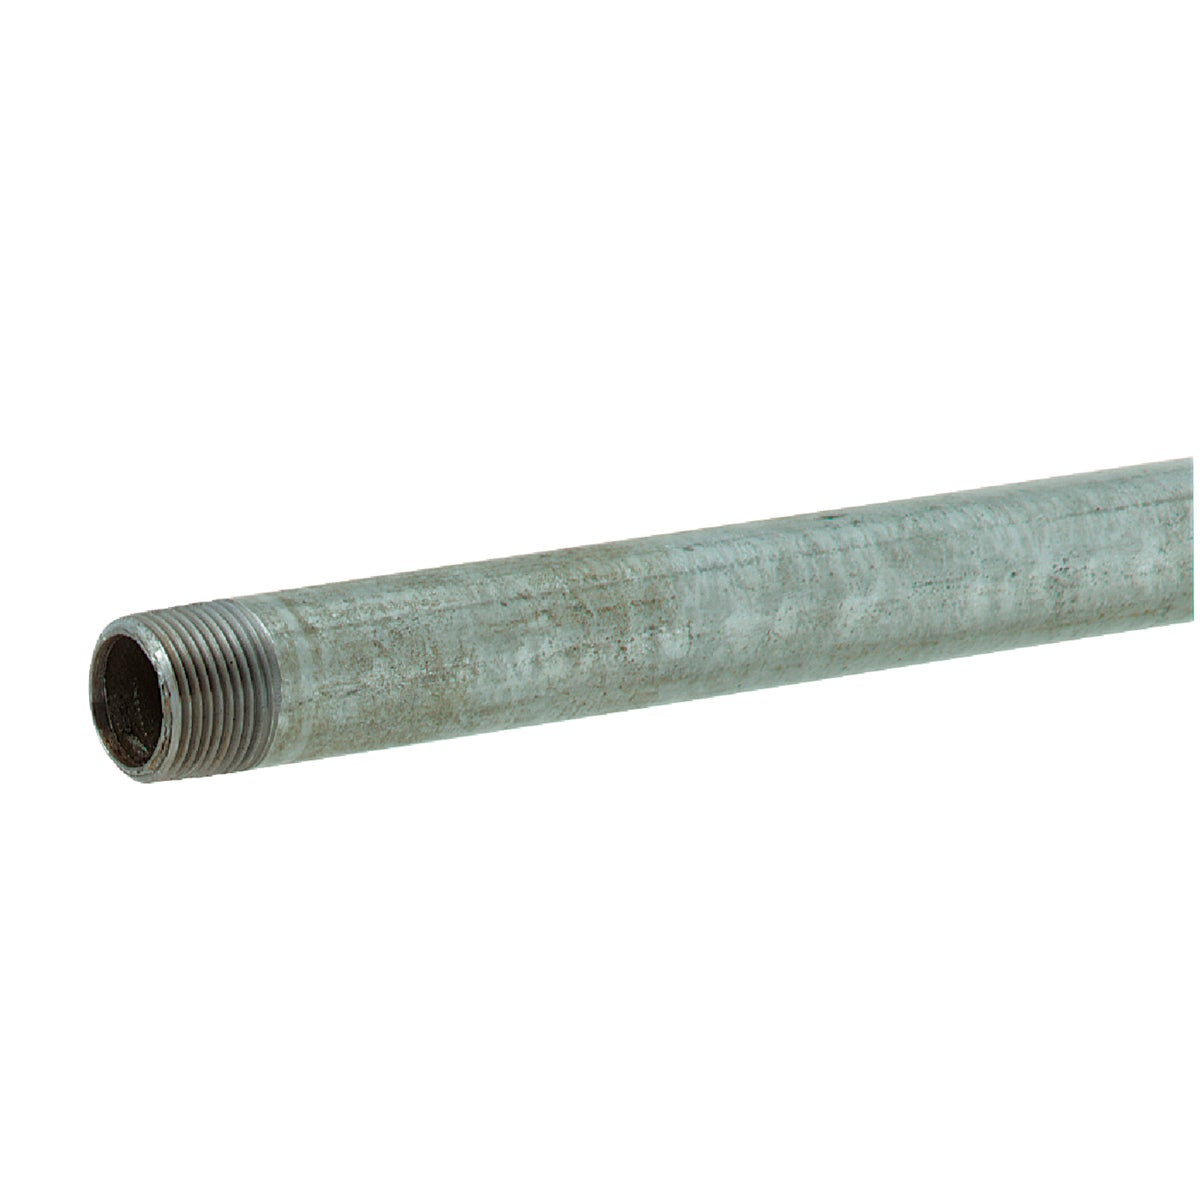 3/4X24 GALV RDI-CT PIPE - 3/4X24 by Southland Pipe Nippl